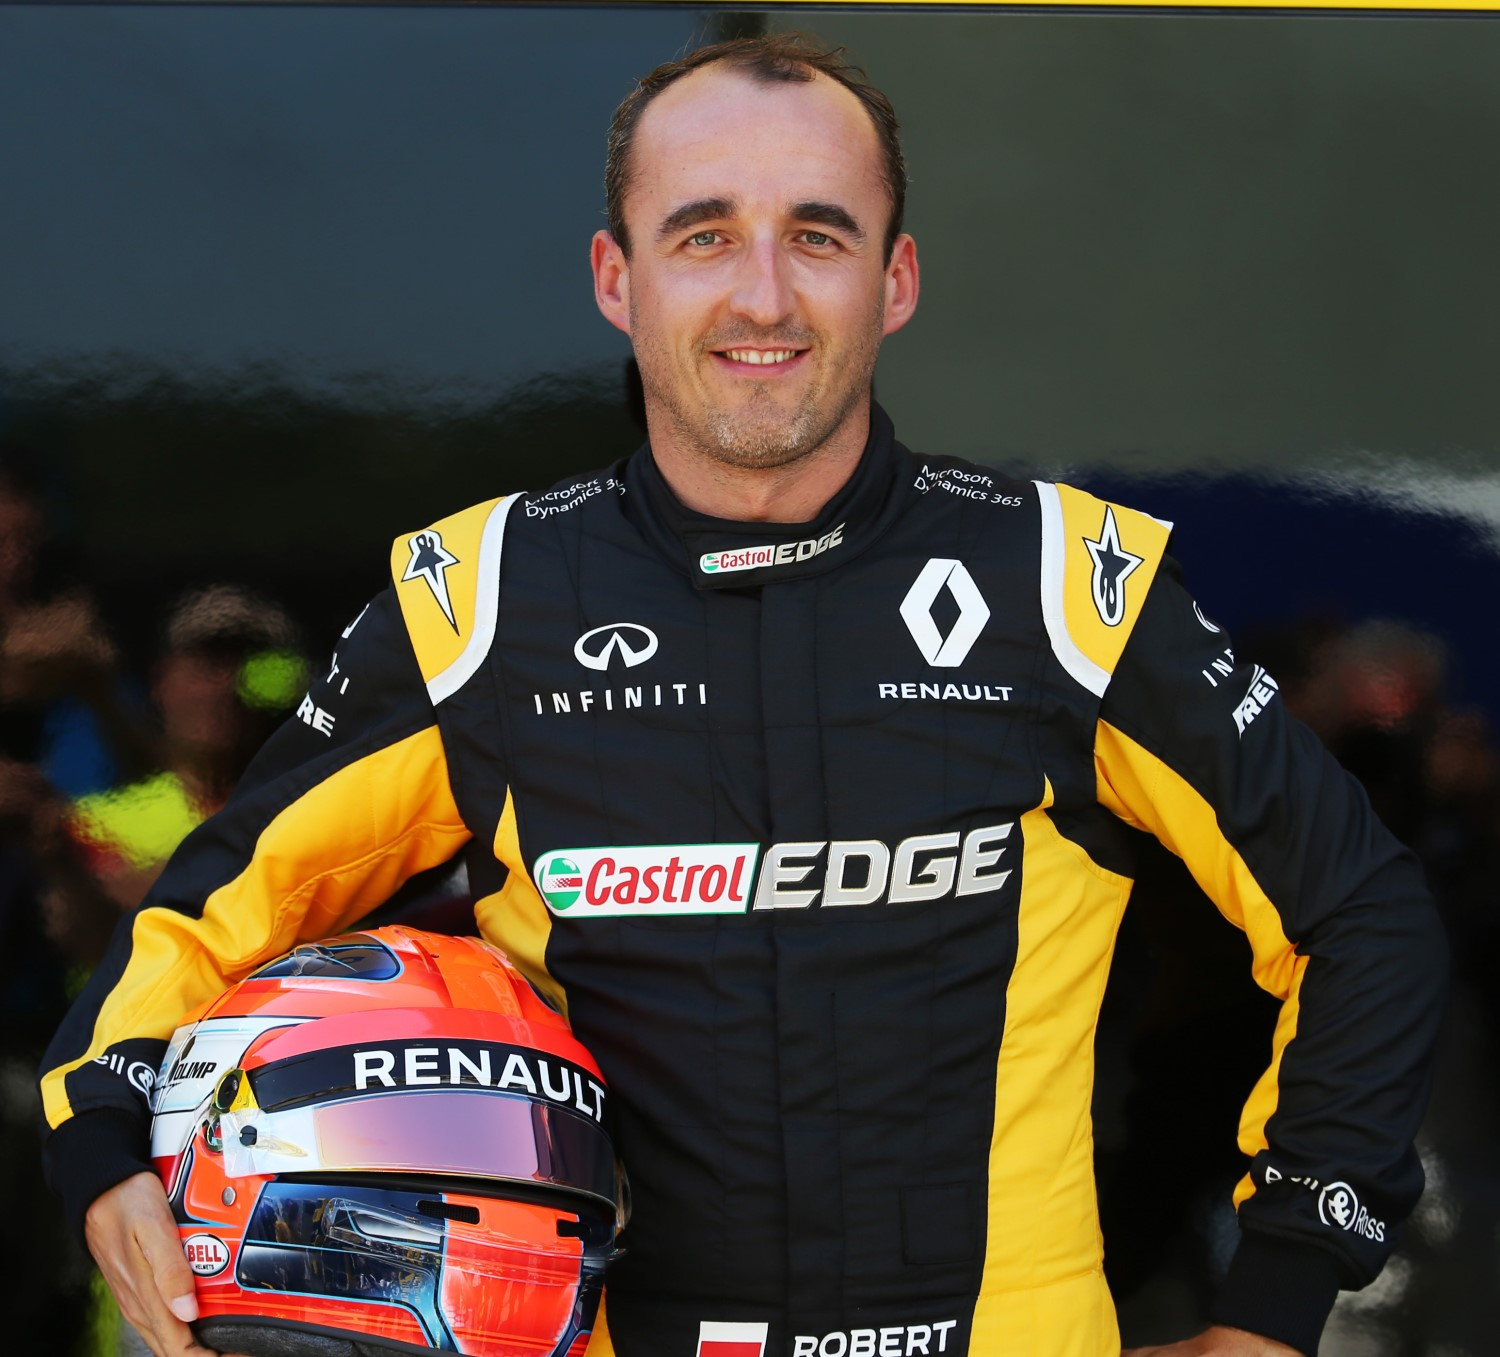 Kubica's check has not cleared yet - he needs to buy his test